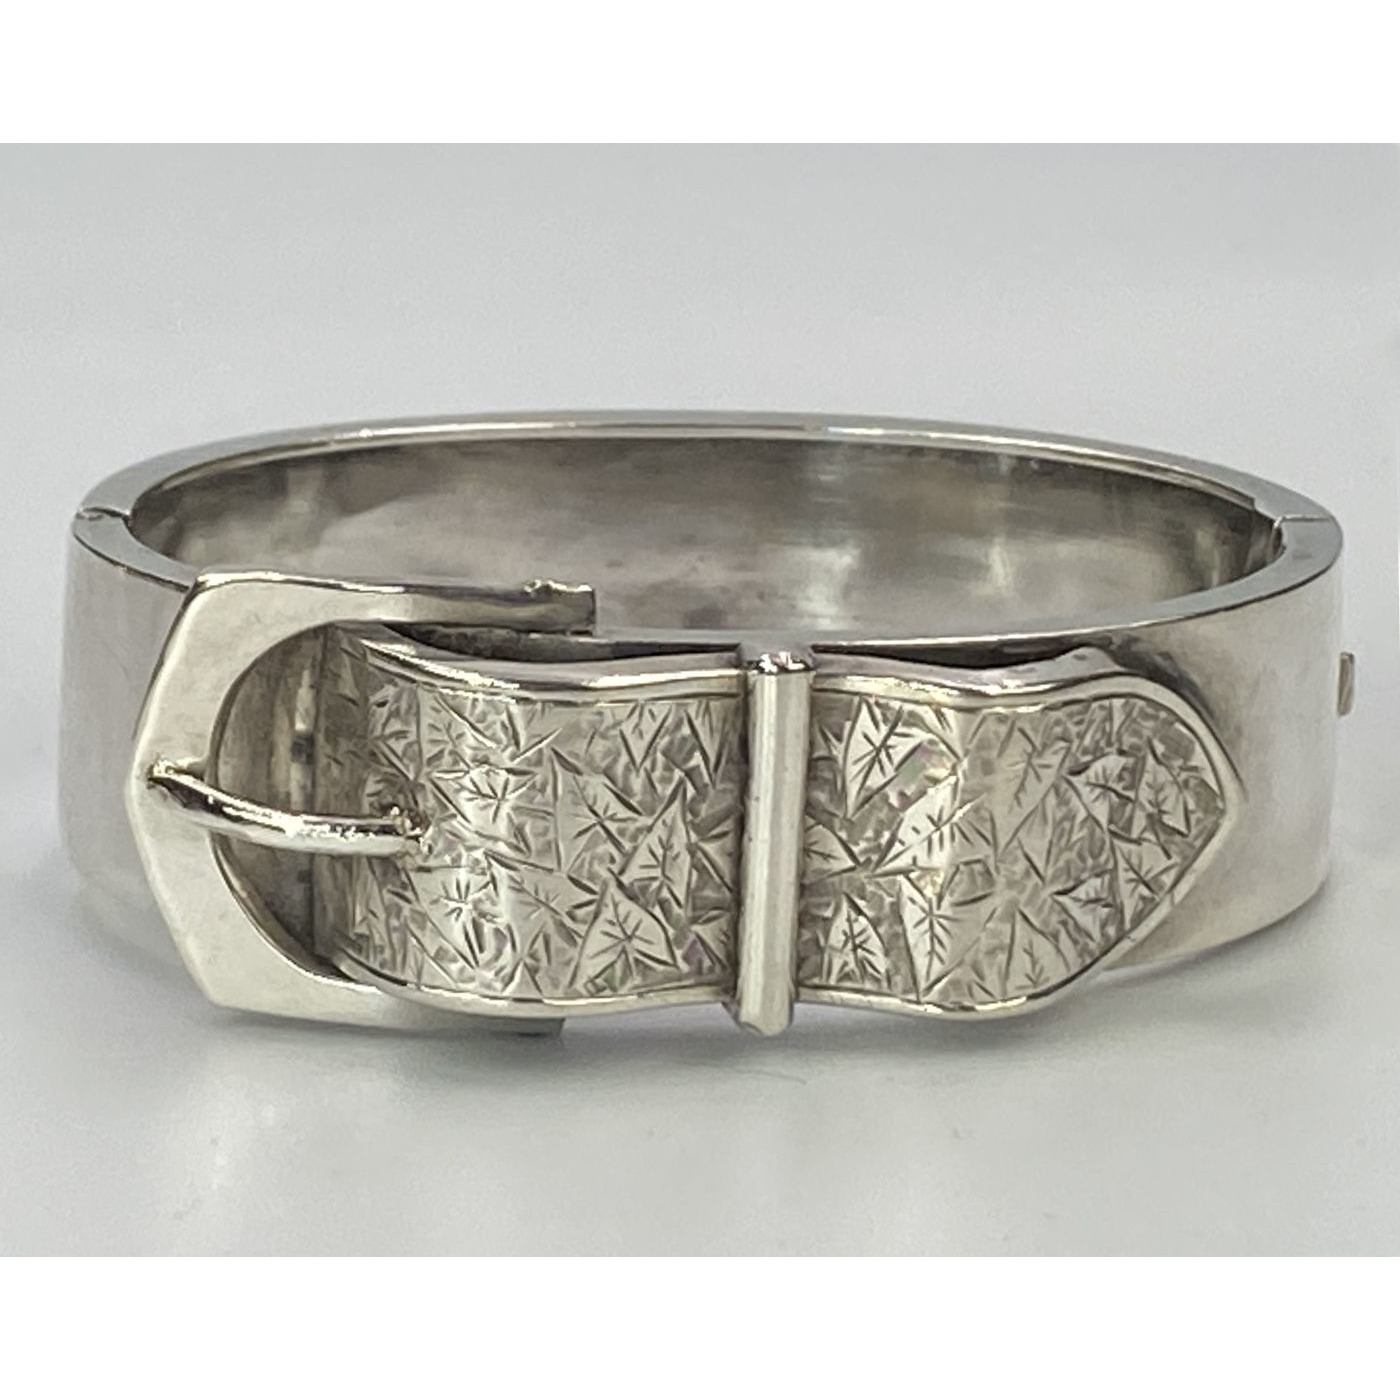 Unusual Curved Belt Buckle Silver English Bangle